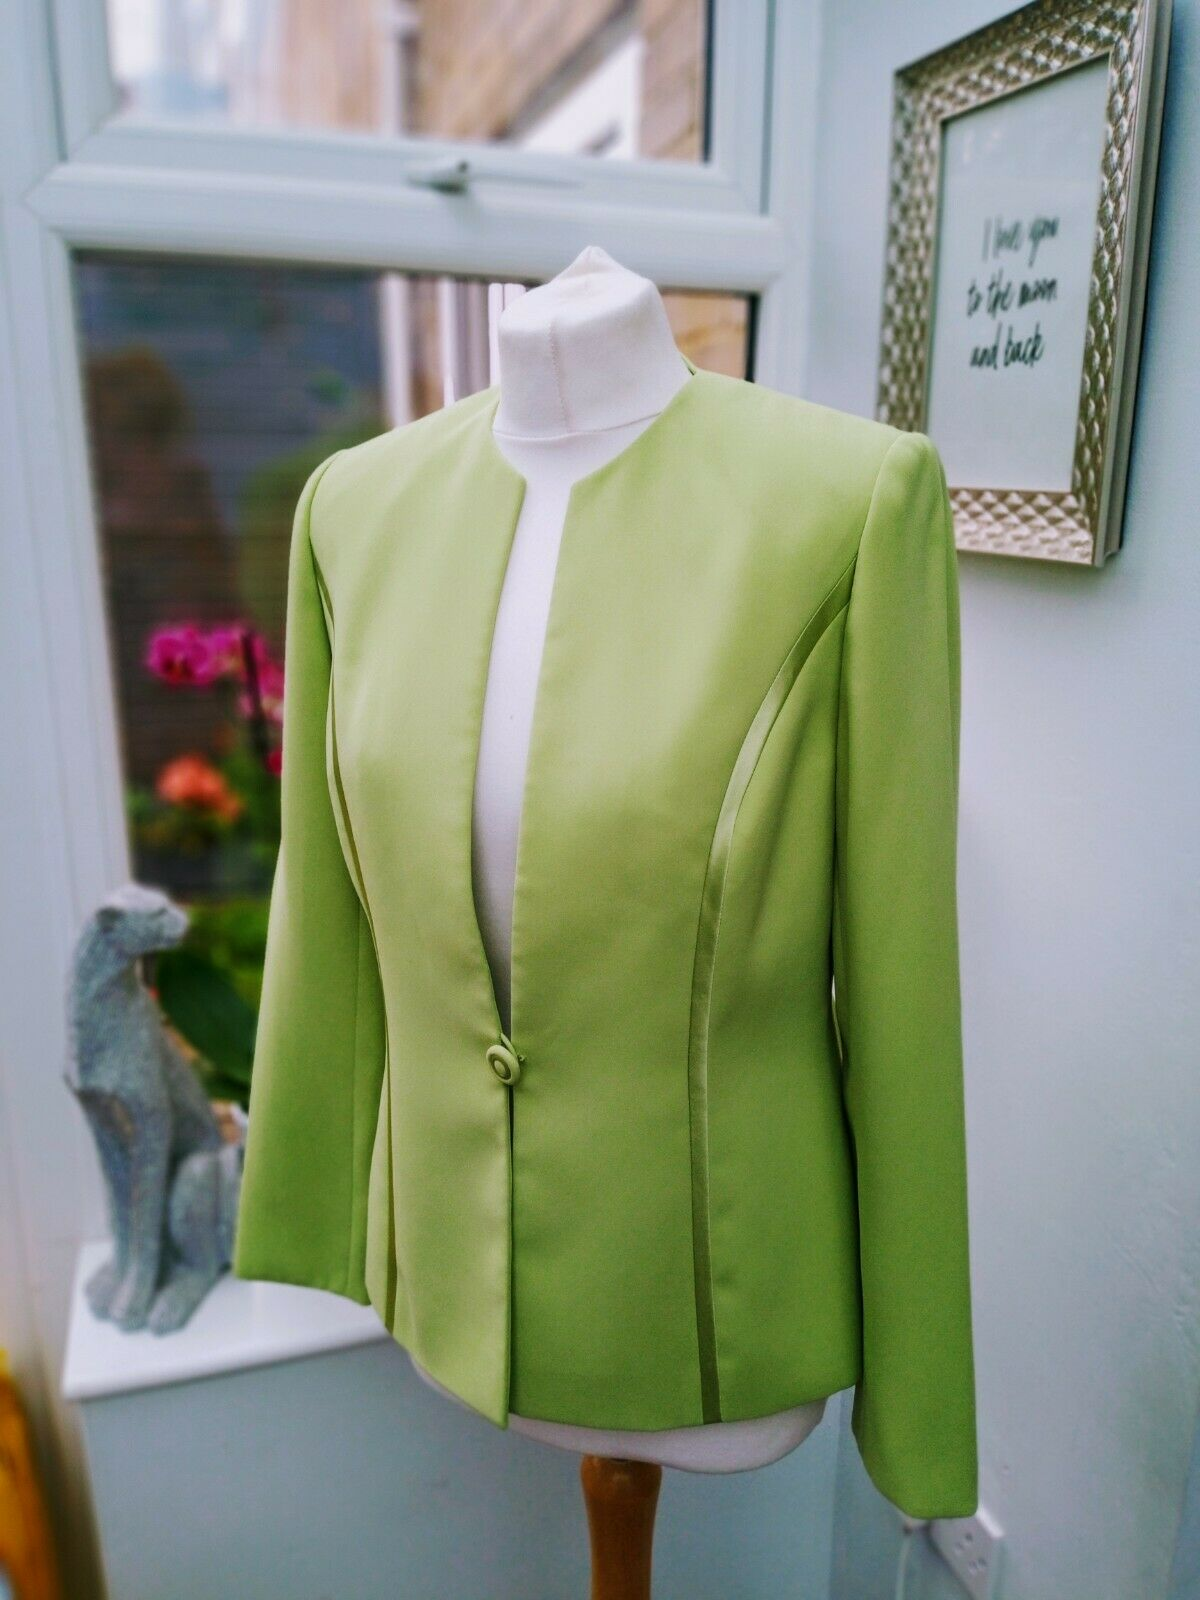 BNWOT Jacques Vert Lime Green Jacket Size 10 Mother Of The Bride Office Smart